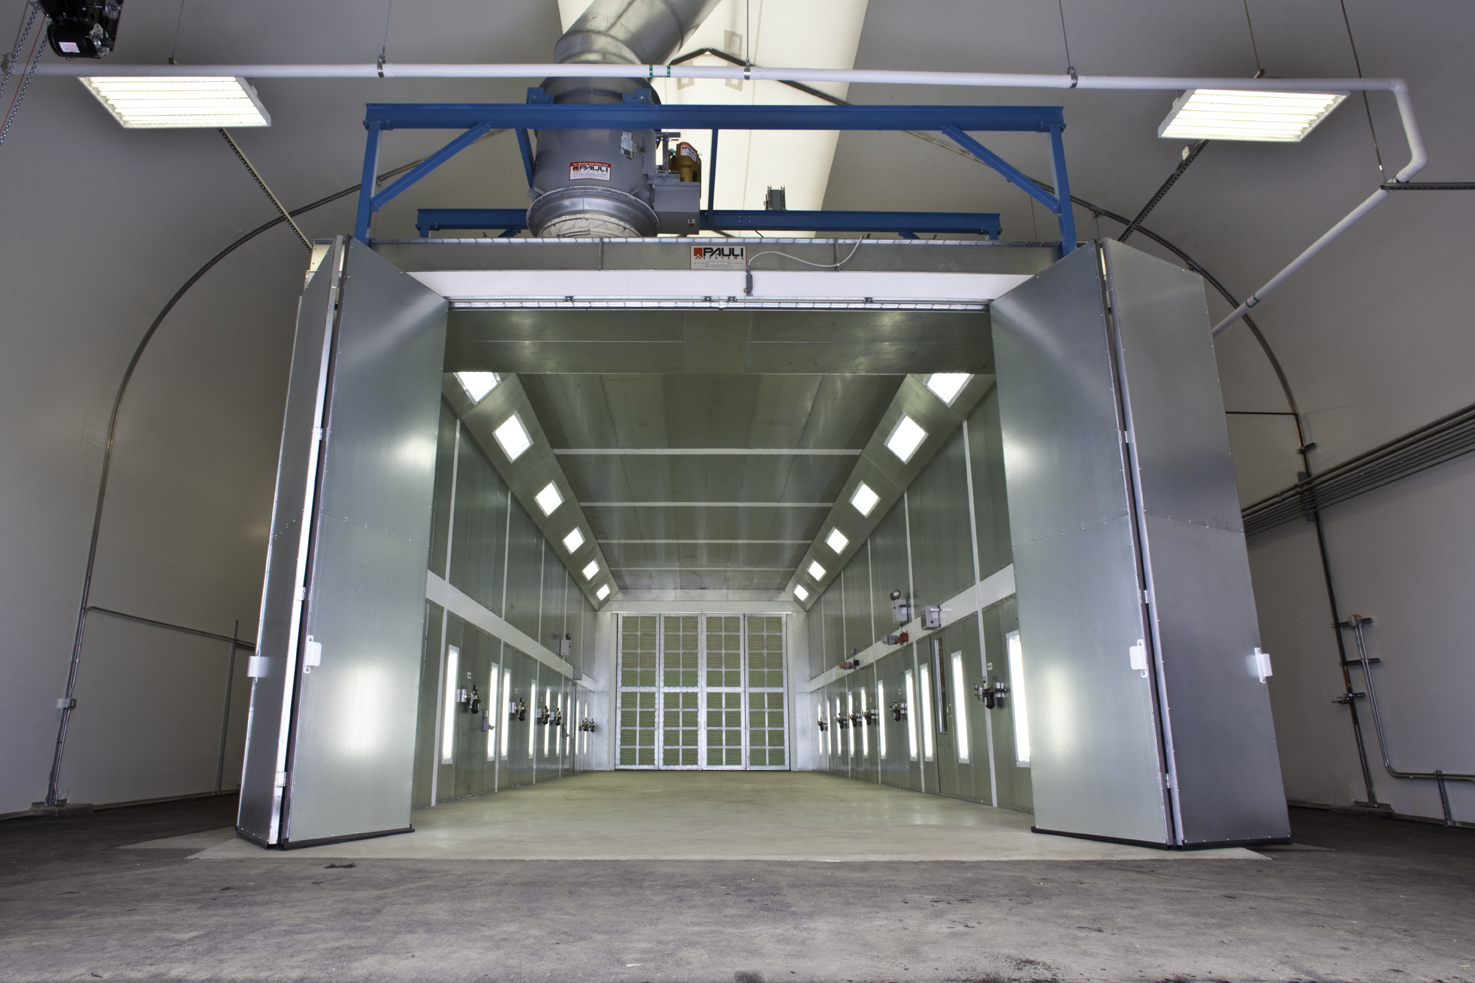 Paint Booth 20' wide x 17' high x 60' long